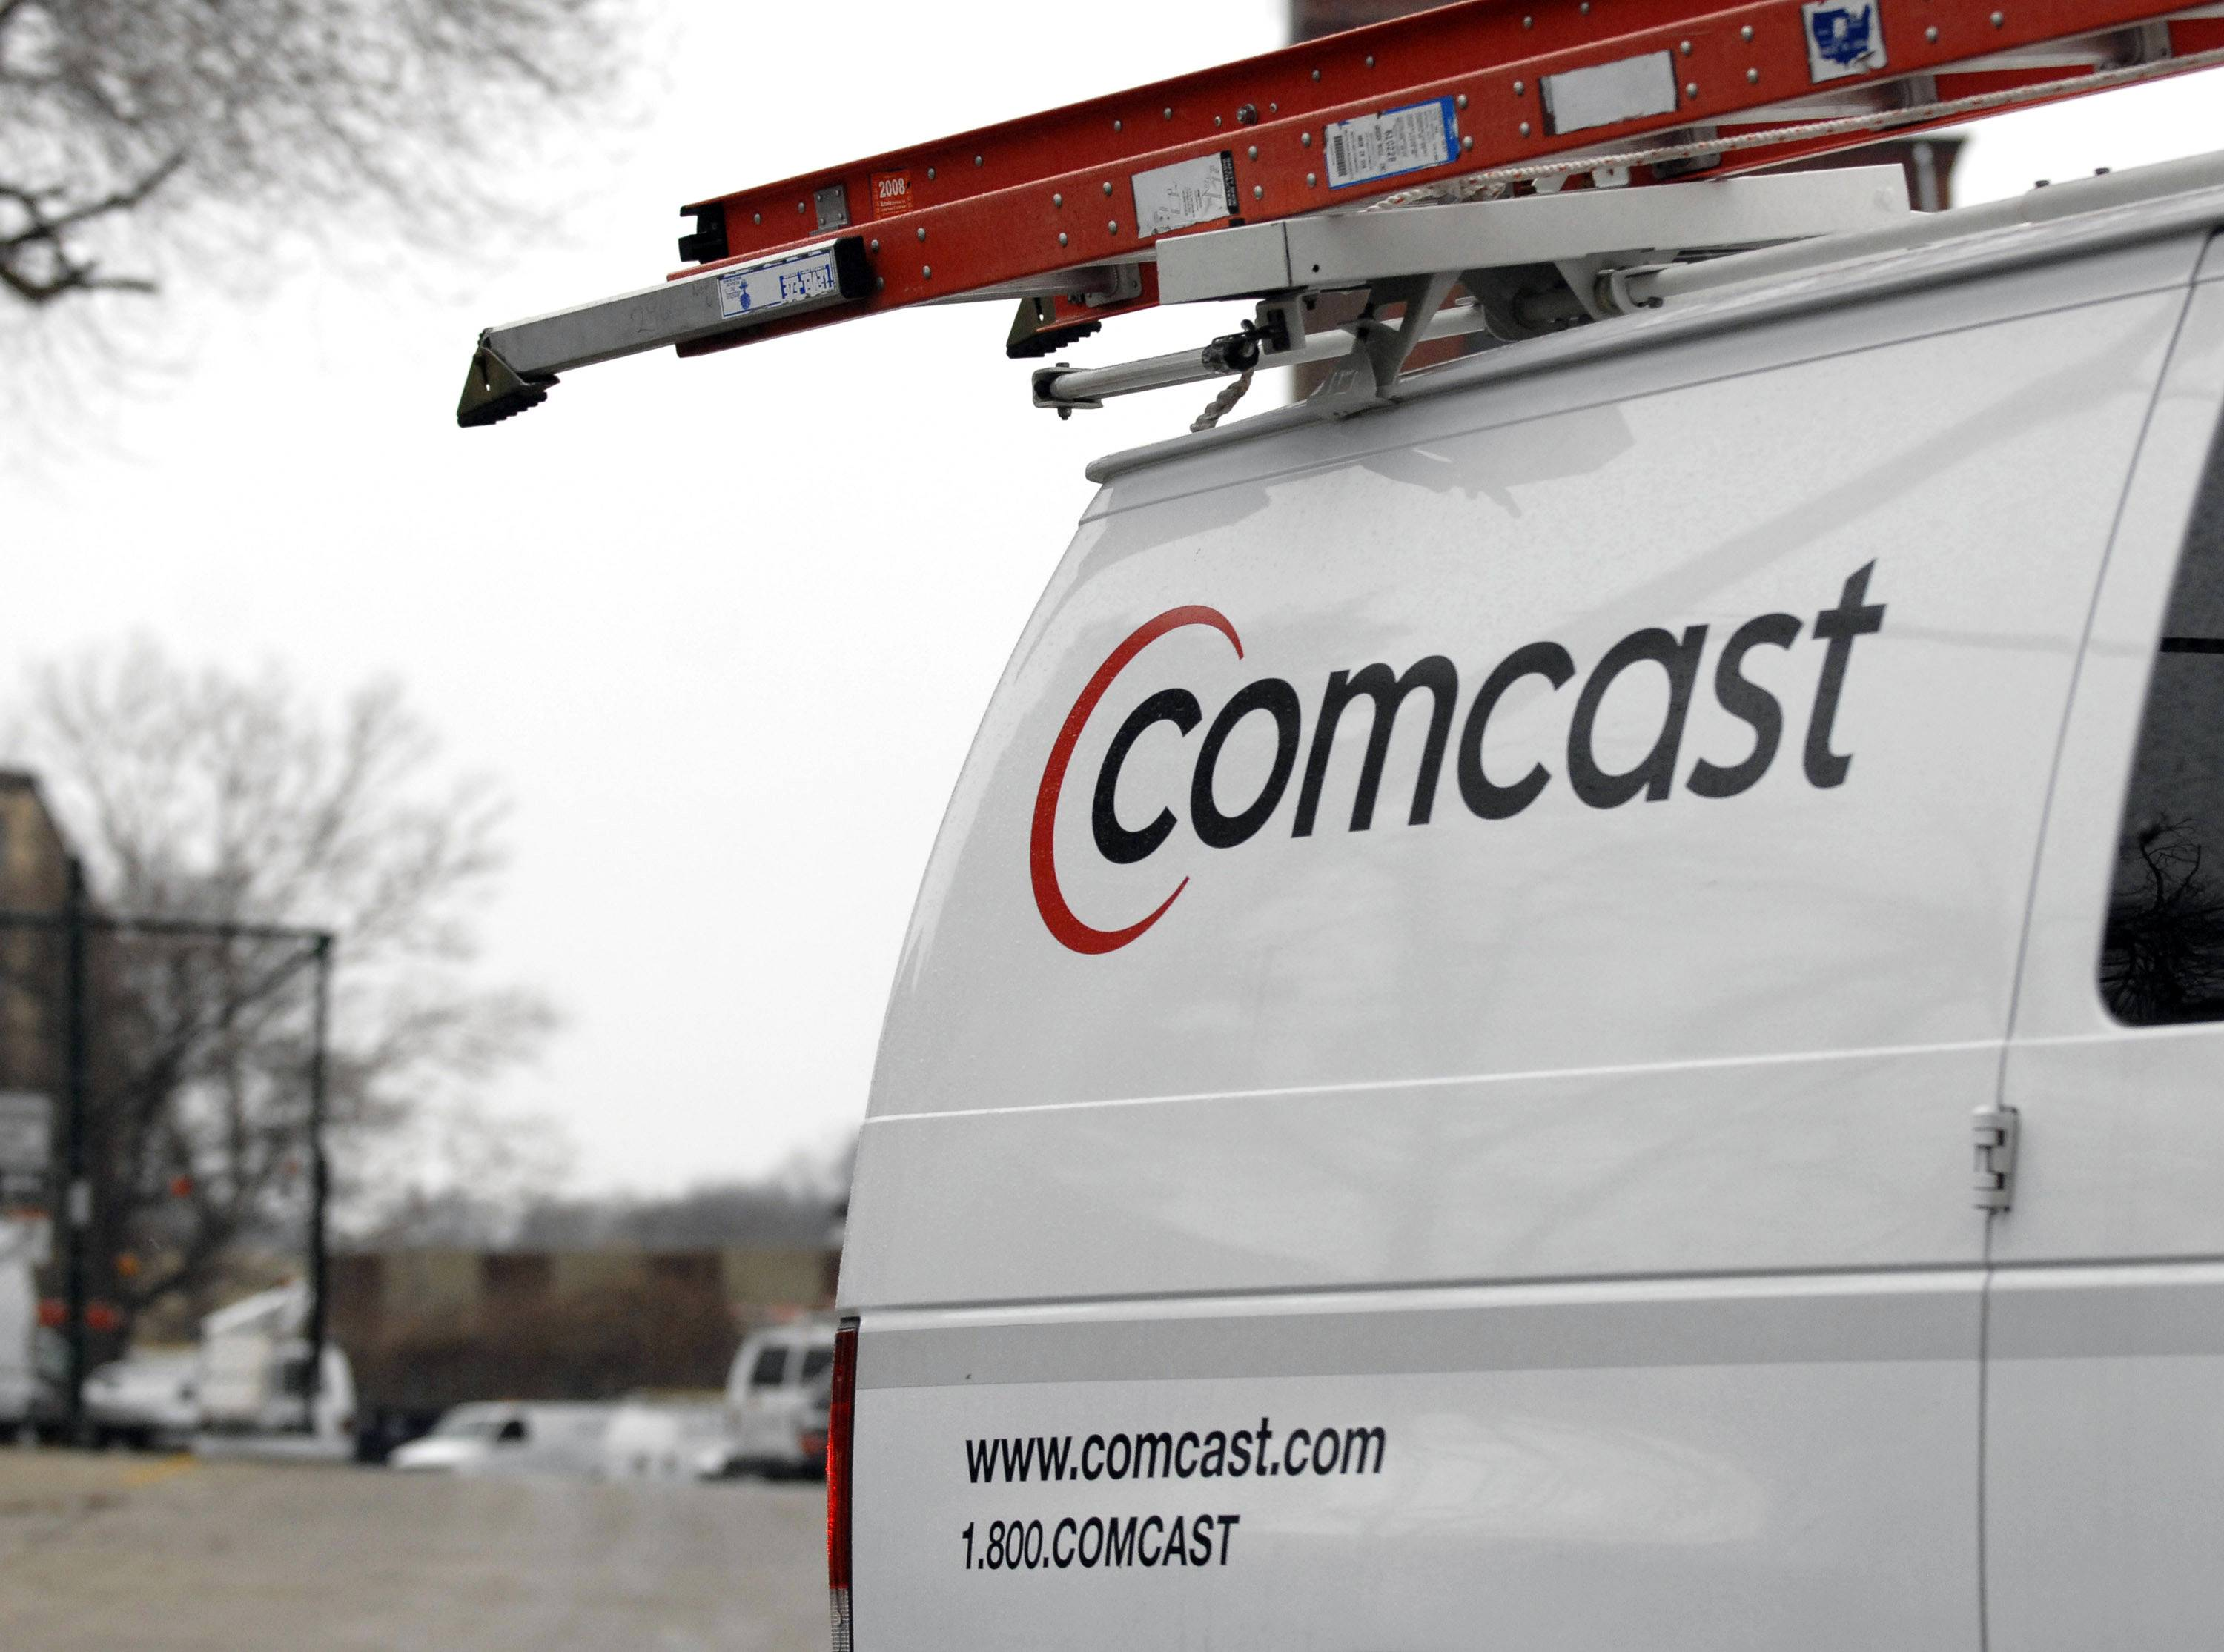 Comcast Corp. has agreed to acquire Time Warner Cable Inc., combining the largest two U.S. cable companies, according to four people familiar with matter.